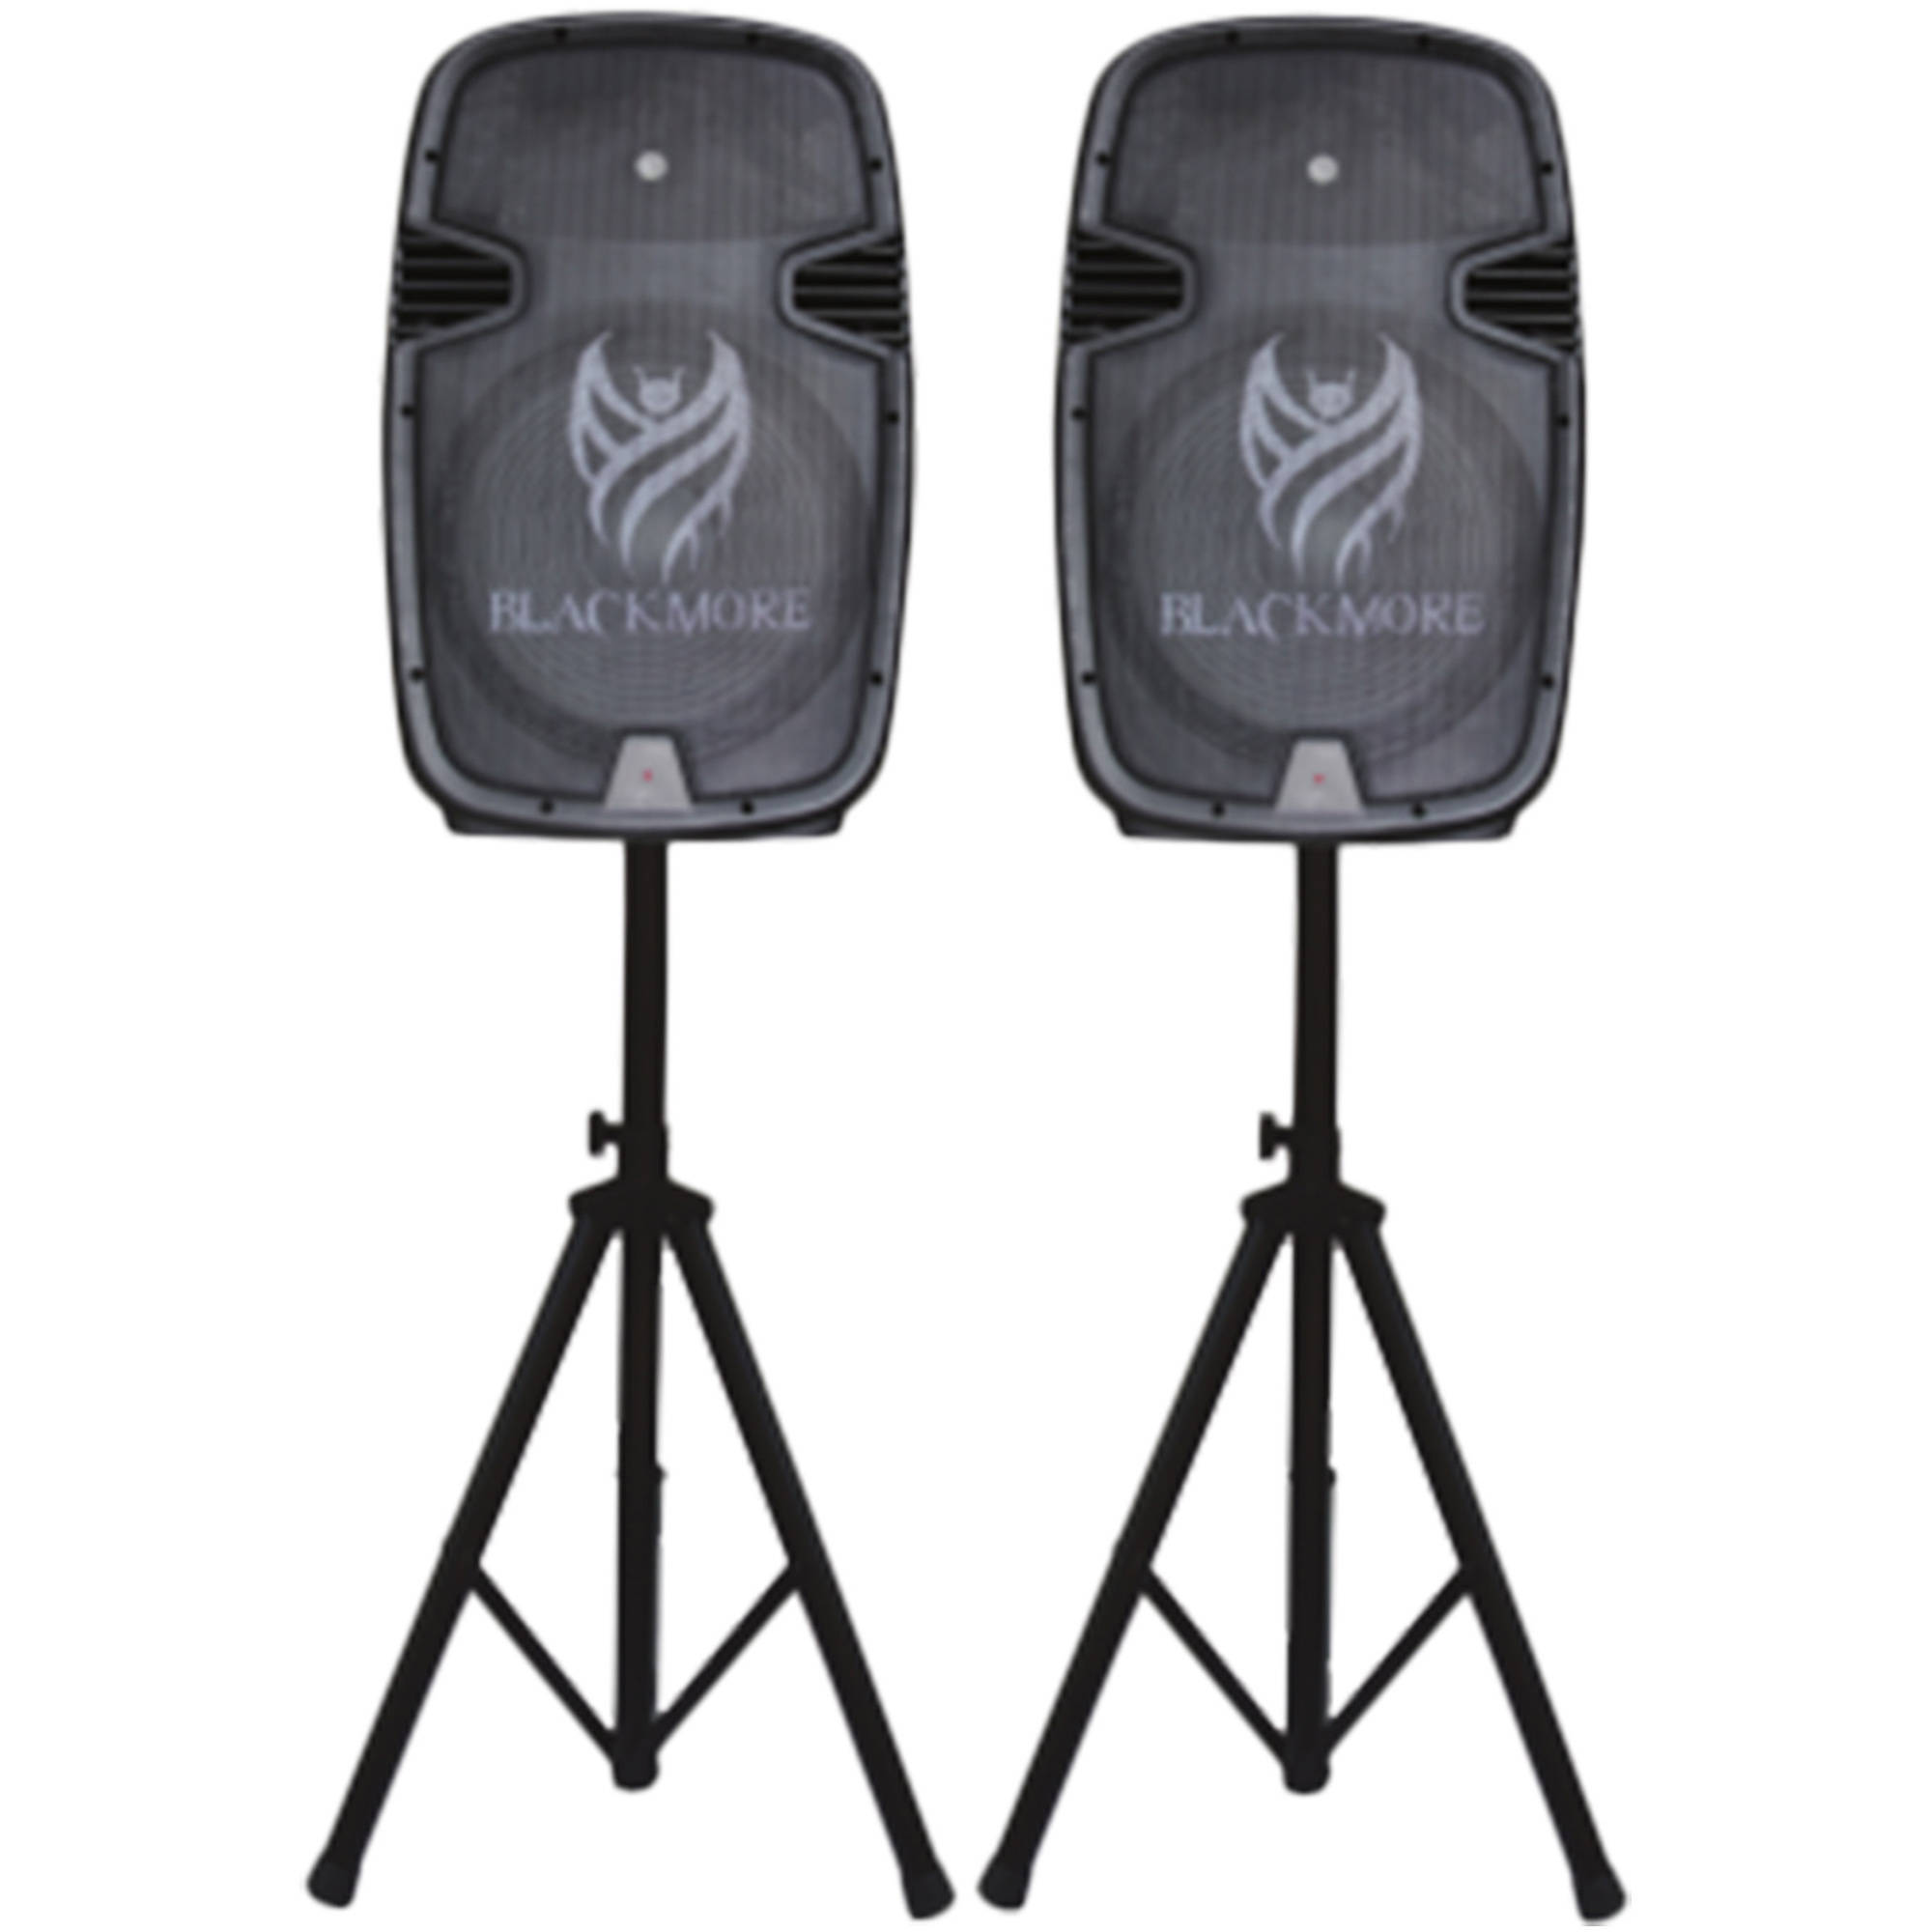 Blackmore Electronics BJST-60KG Blackmore Universal Speaker Stand, Black